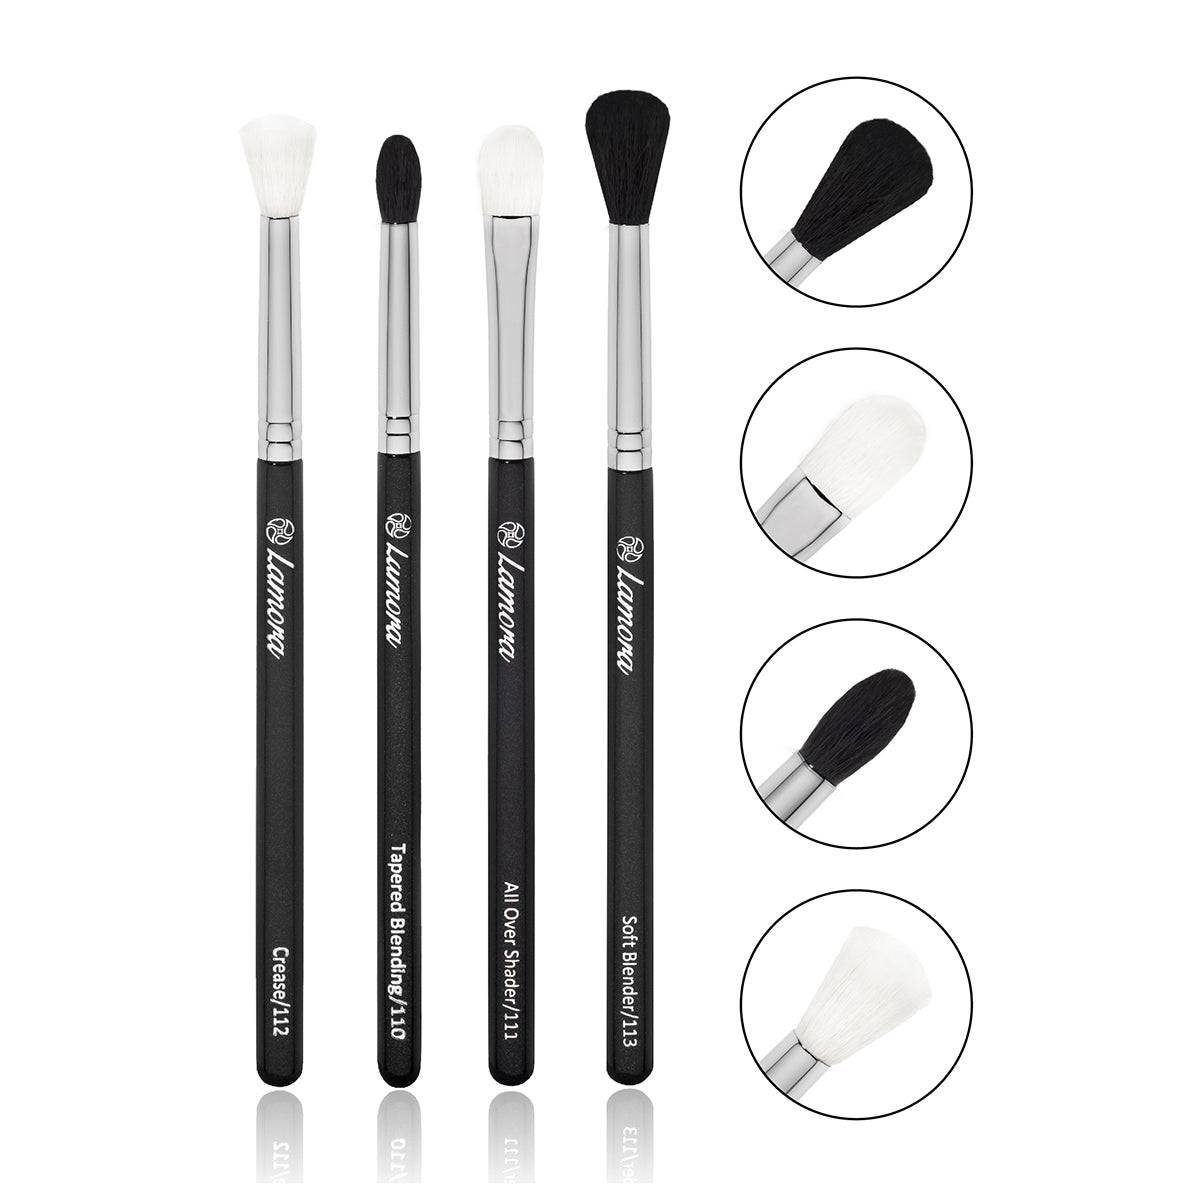 4pc Eyeshadow Blending Brush Set from Lamora Beauty